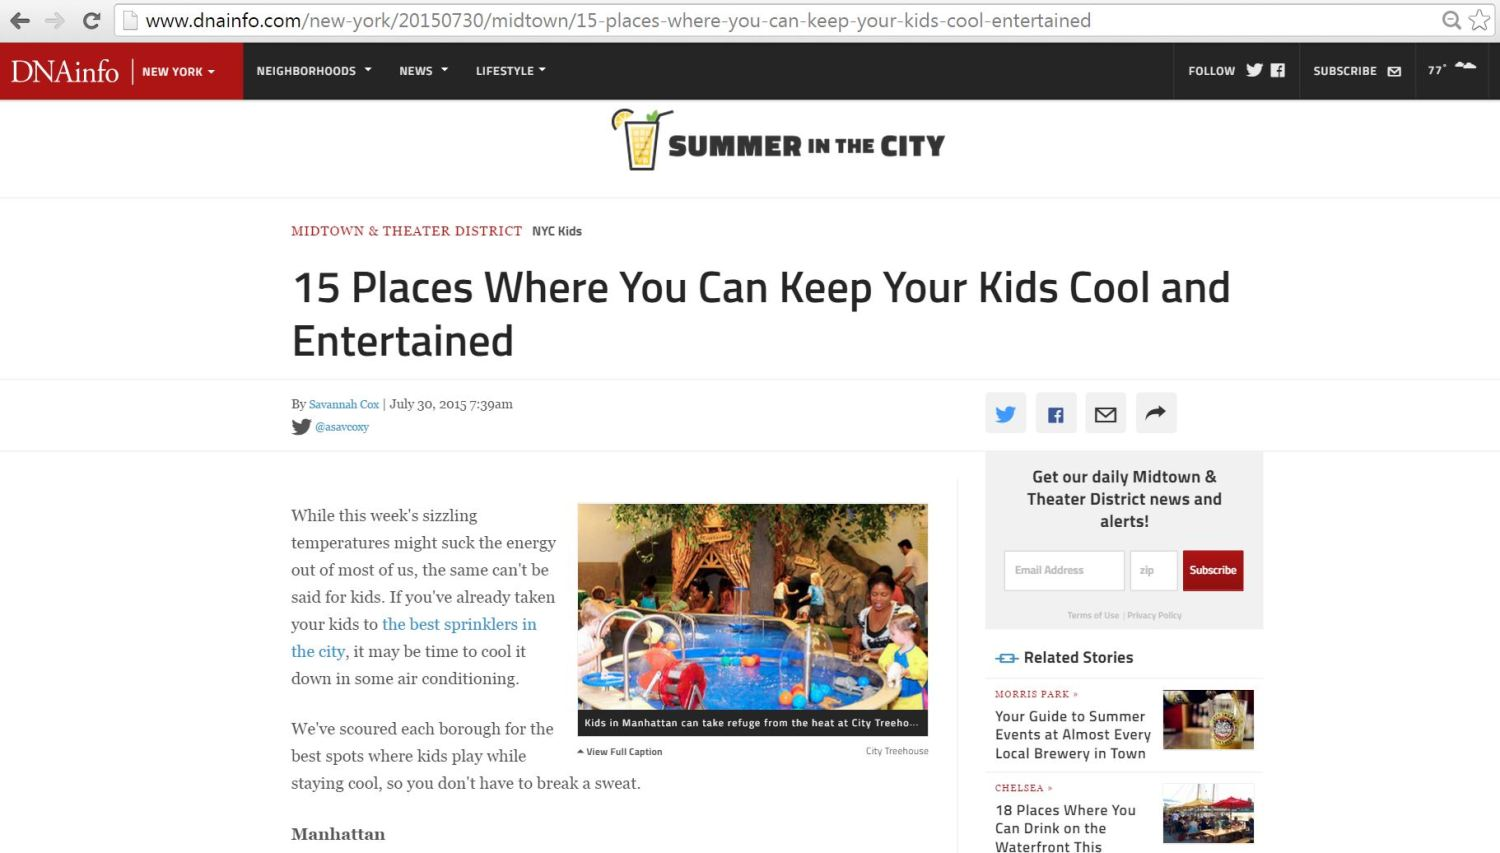 DNA Info 15 Places Where You Can Keep You Kids Cool and Entertained